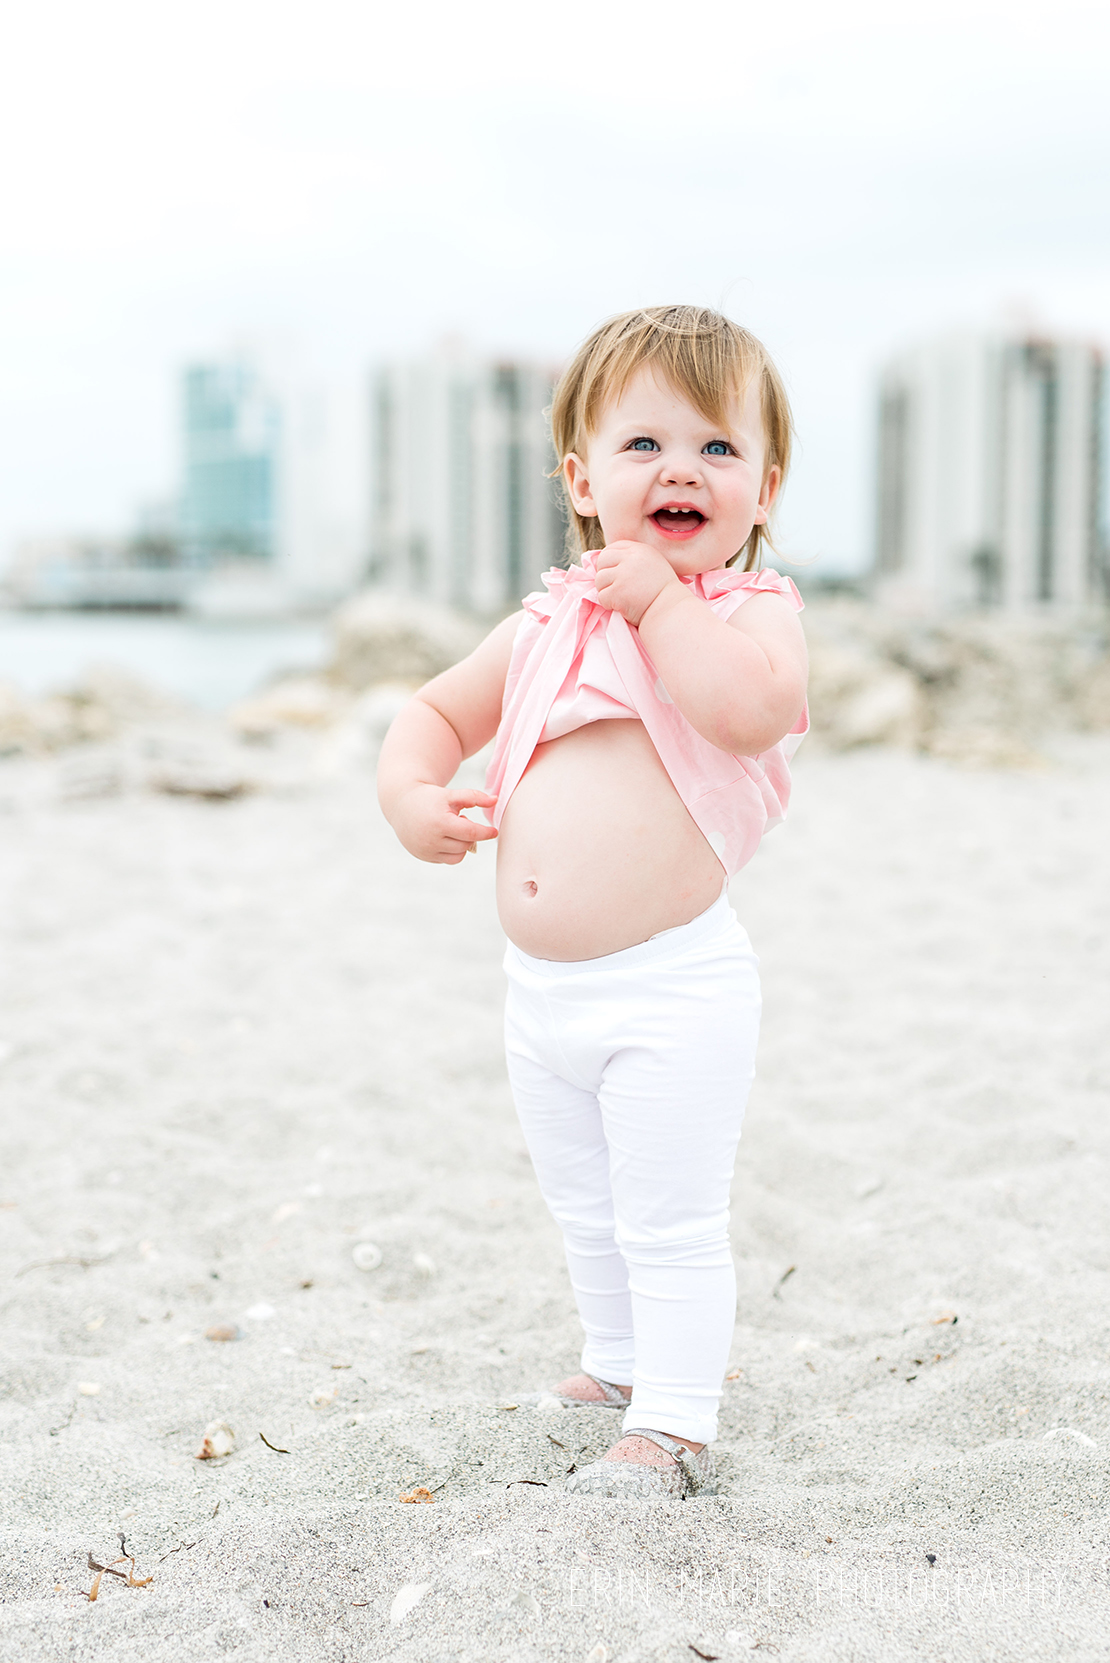 Sandkey_Beach_Family_Photographer_29.jpg